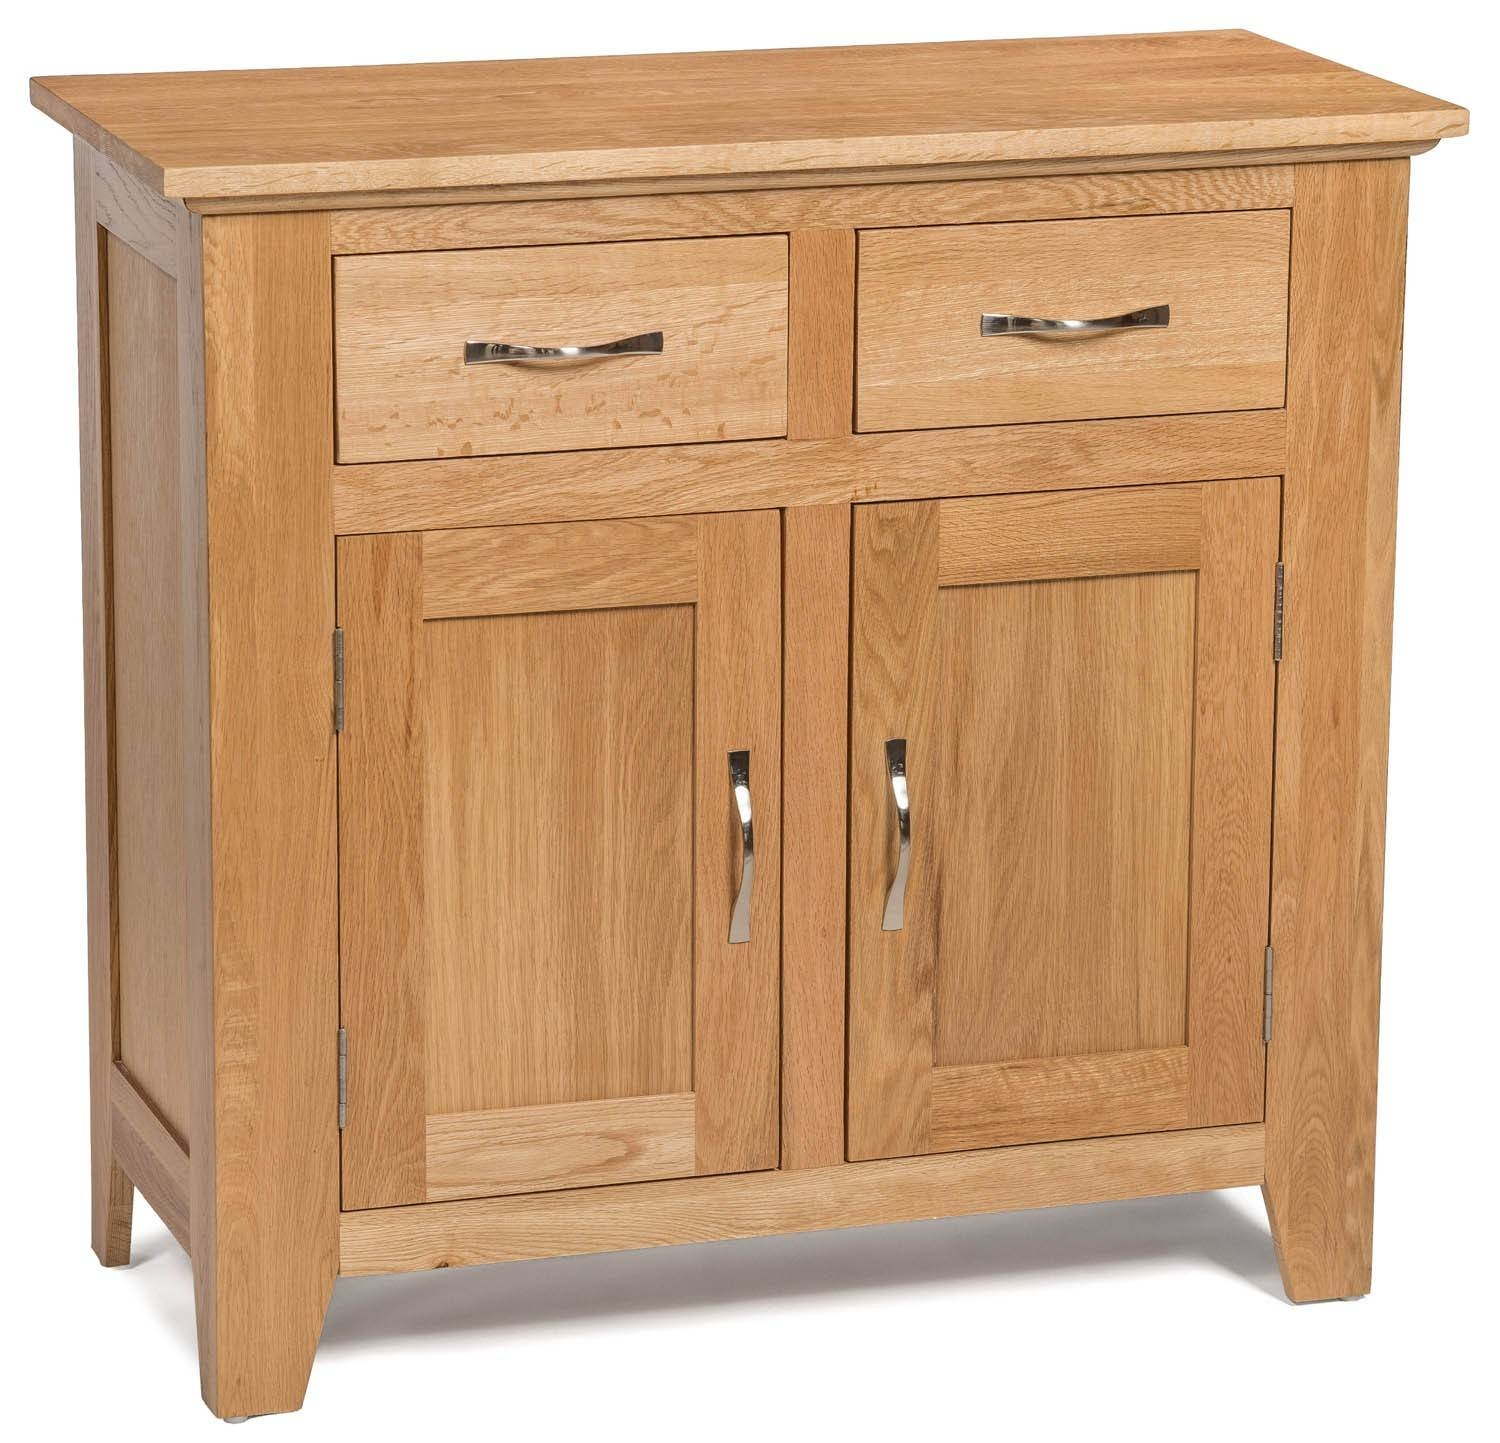 Camberley Oak Small 2 Door 2 Drawer Sideboard | Hallowood Throughout Recent Natural Oak Sideboards (#3 of 15)